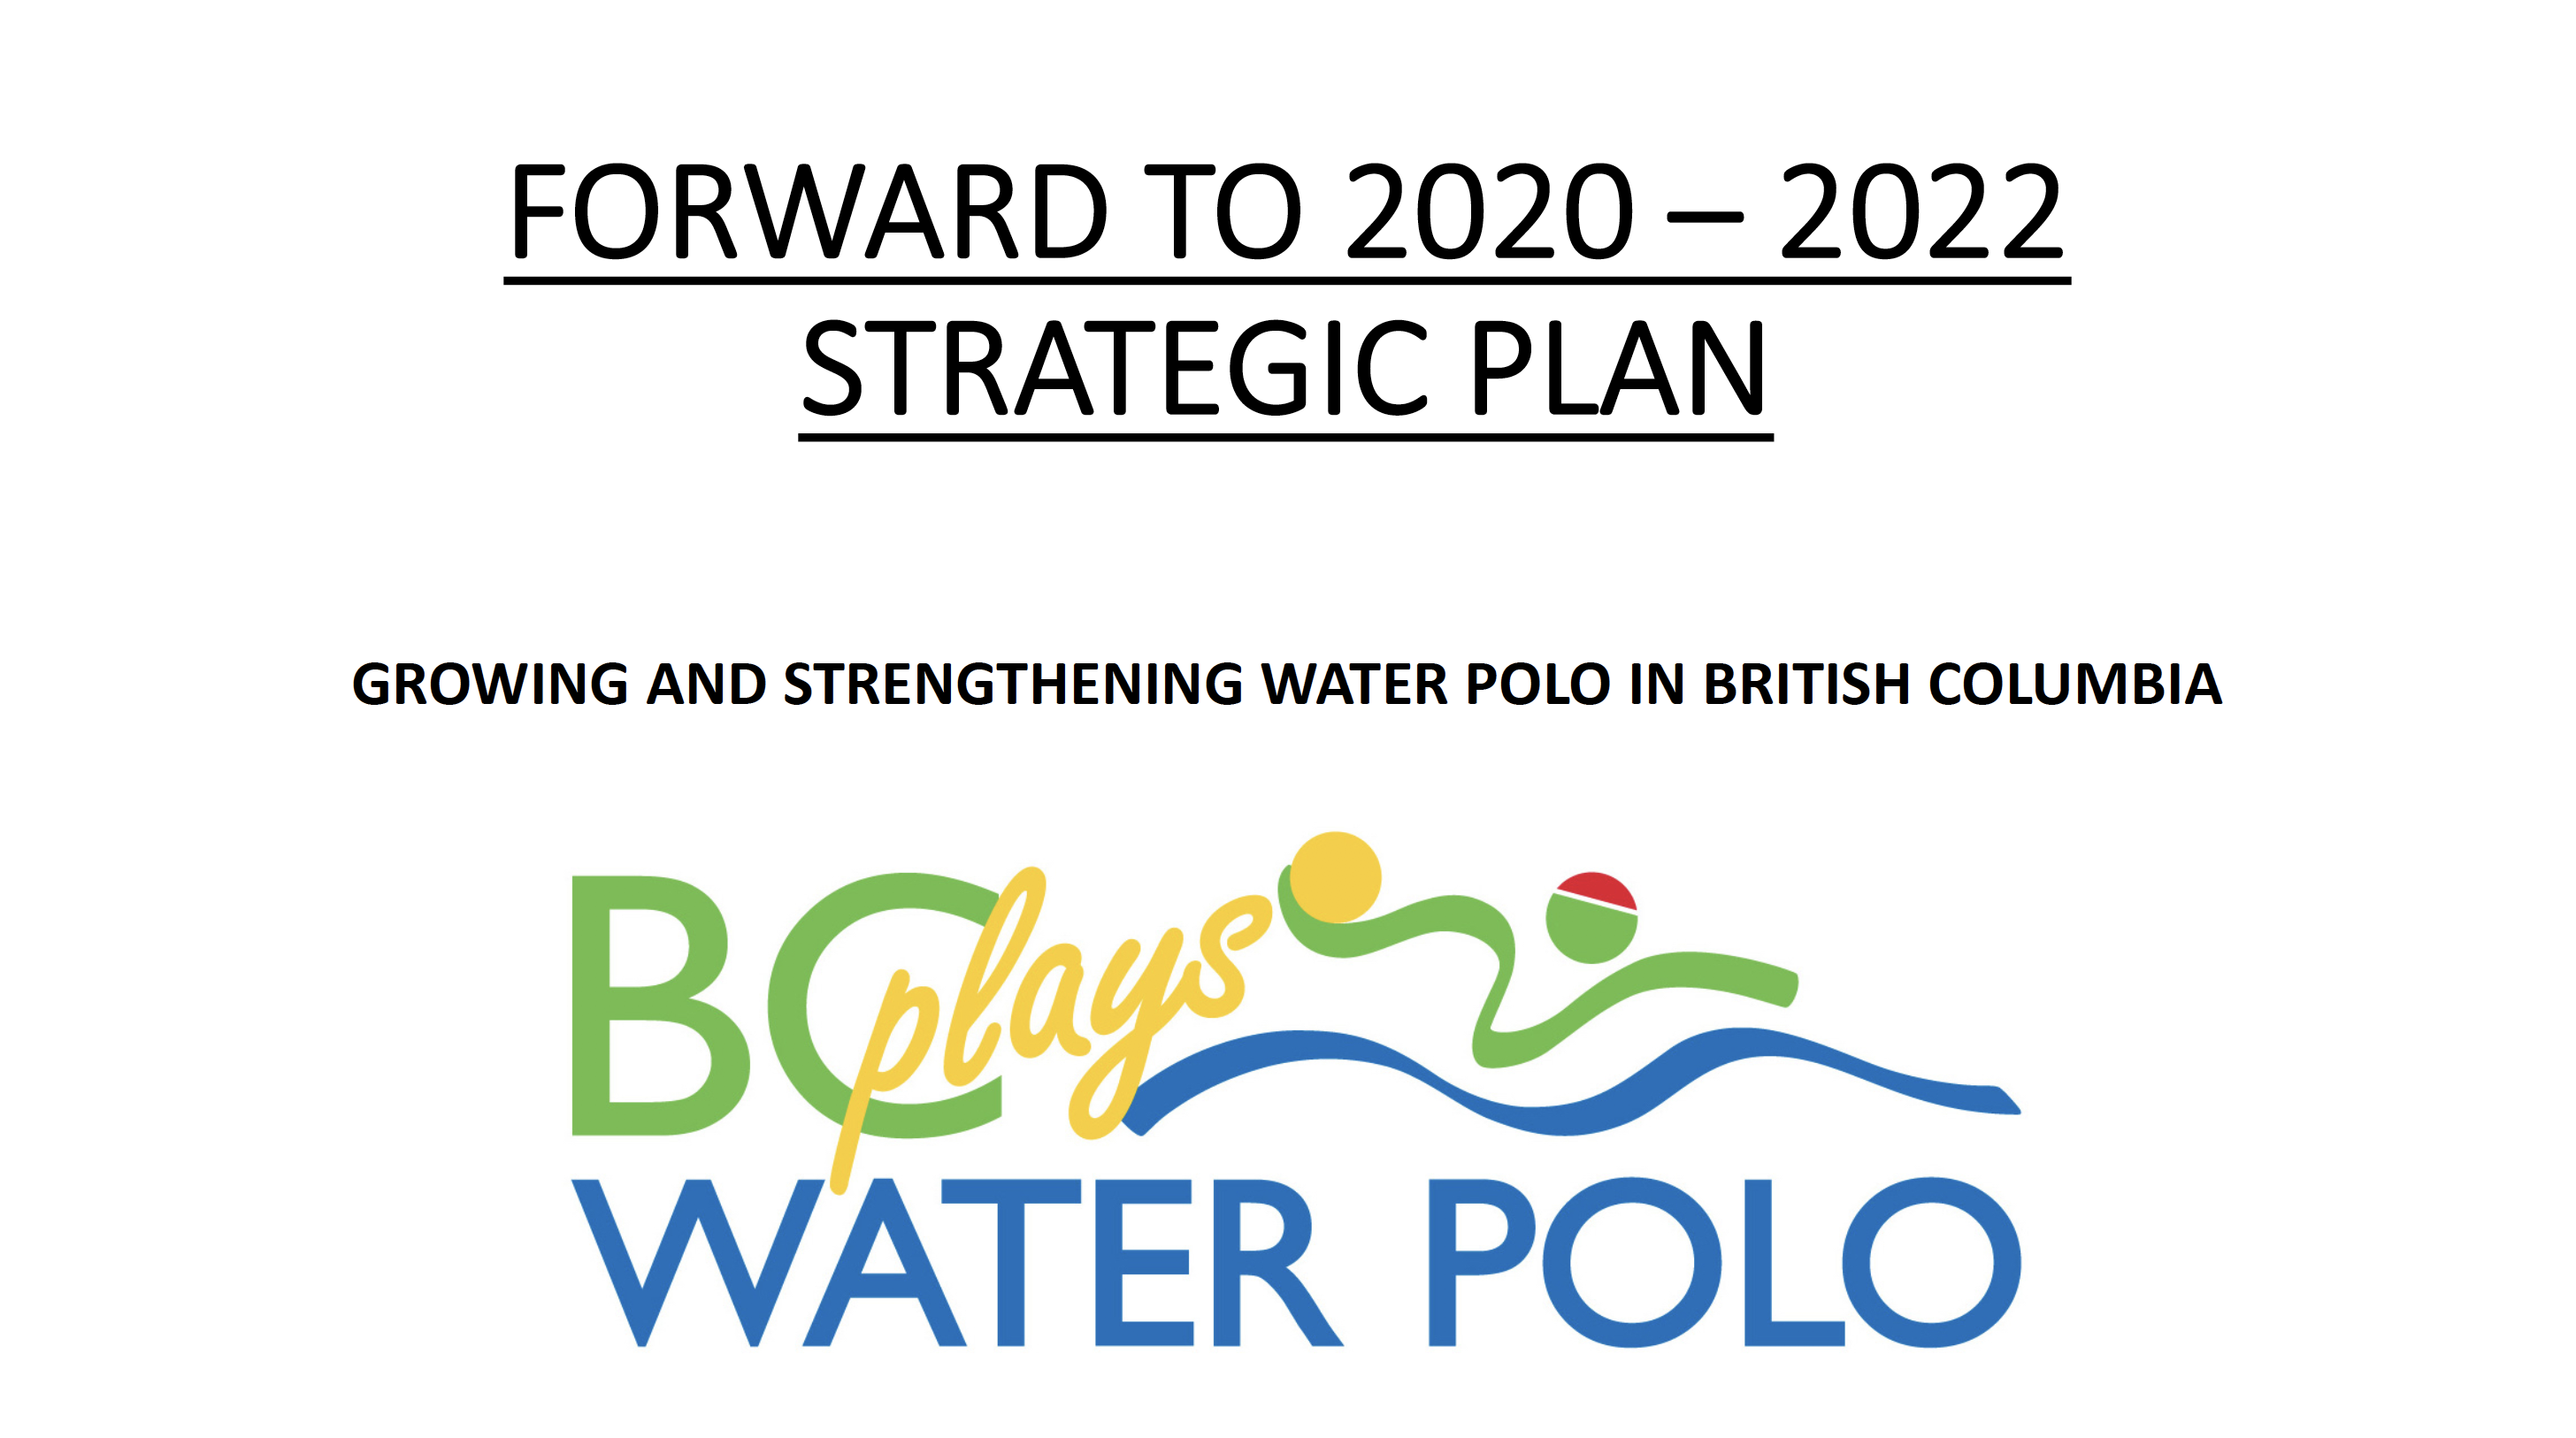 Forward to 2020-2022 Strategic Plan